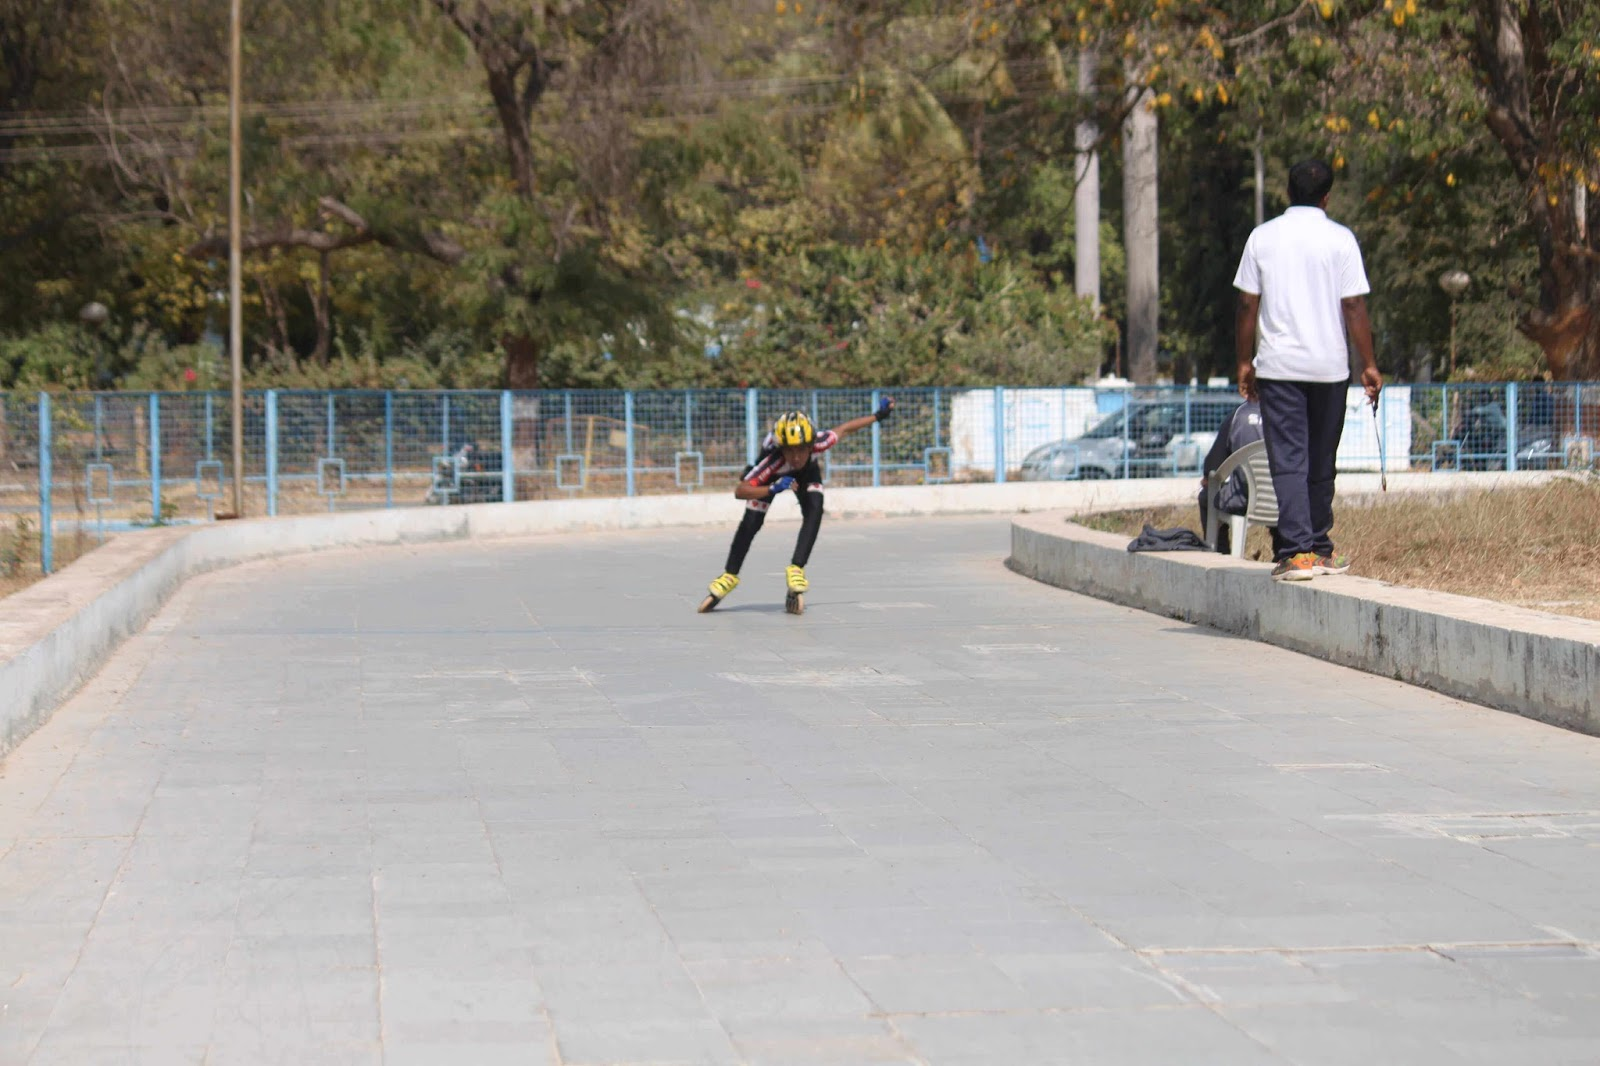 skating classes at bowenpally in hyderabad dc skate shoes skate shoes for children